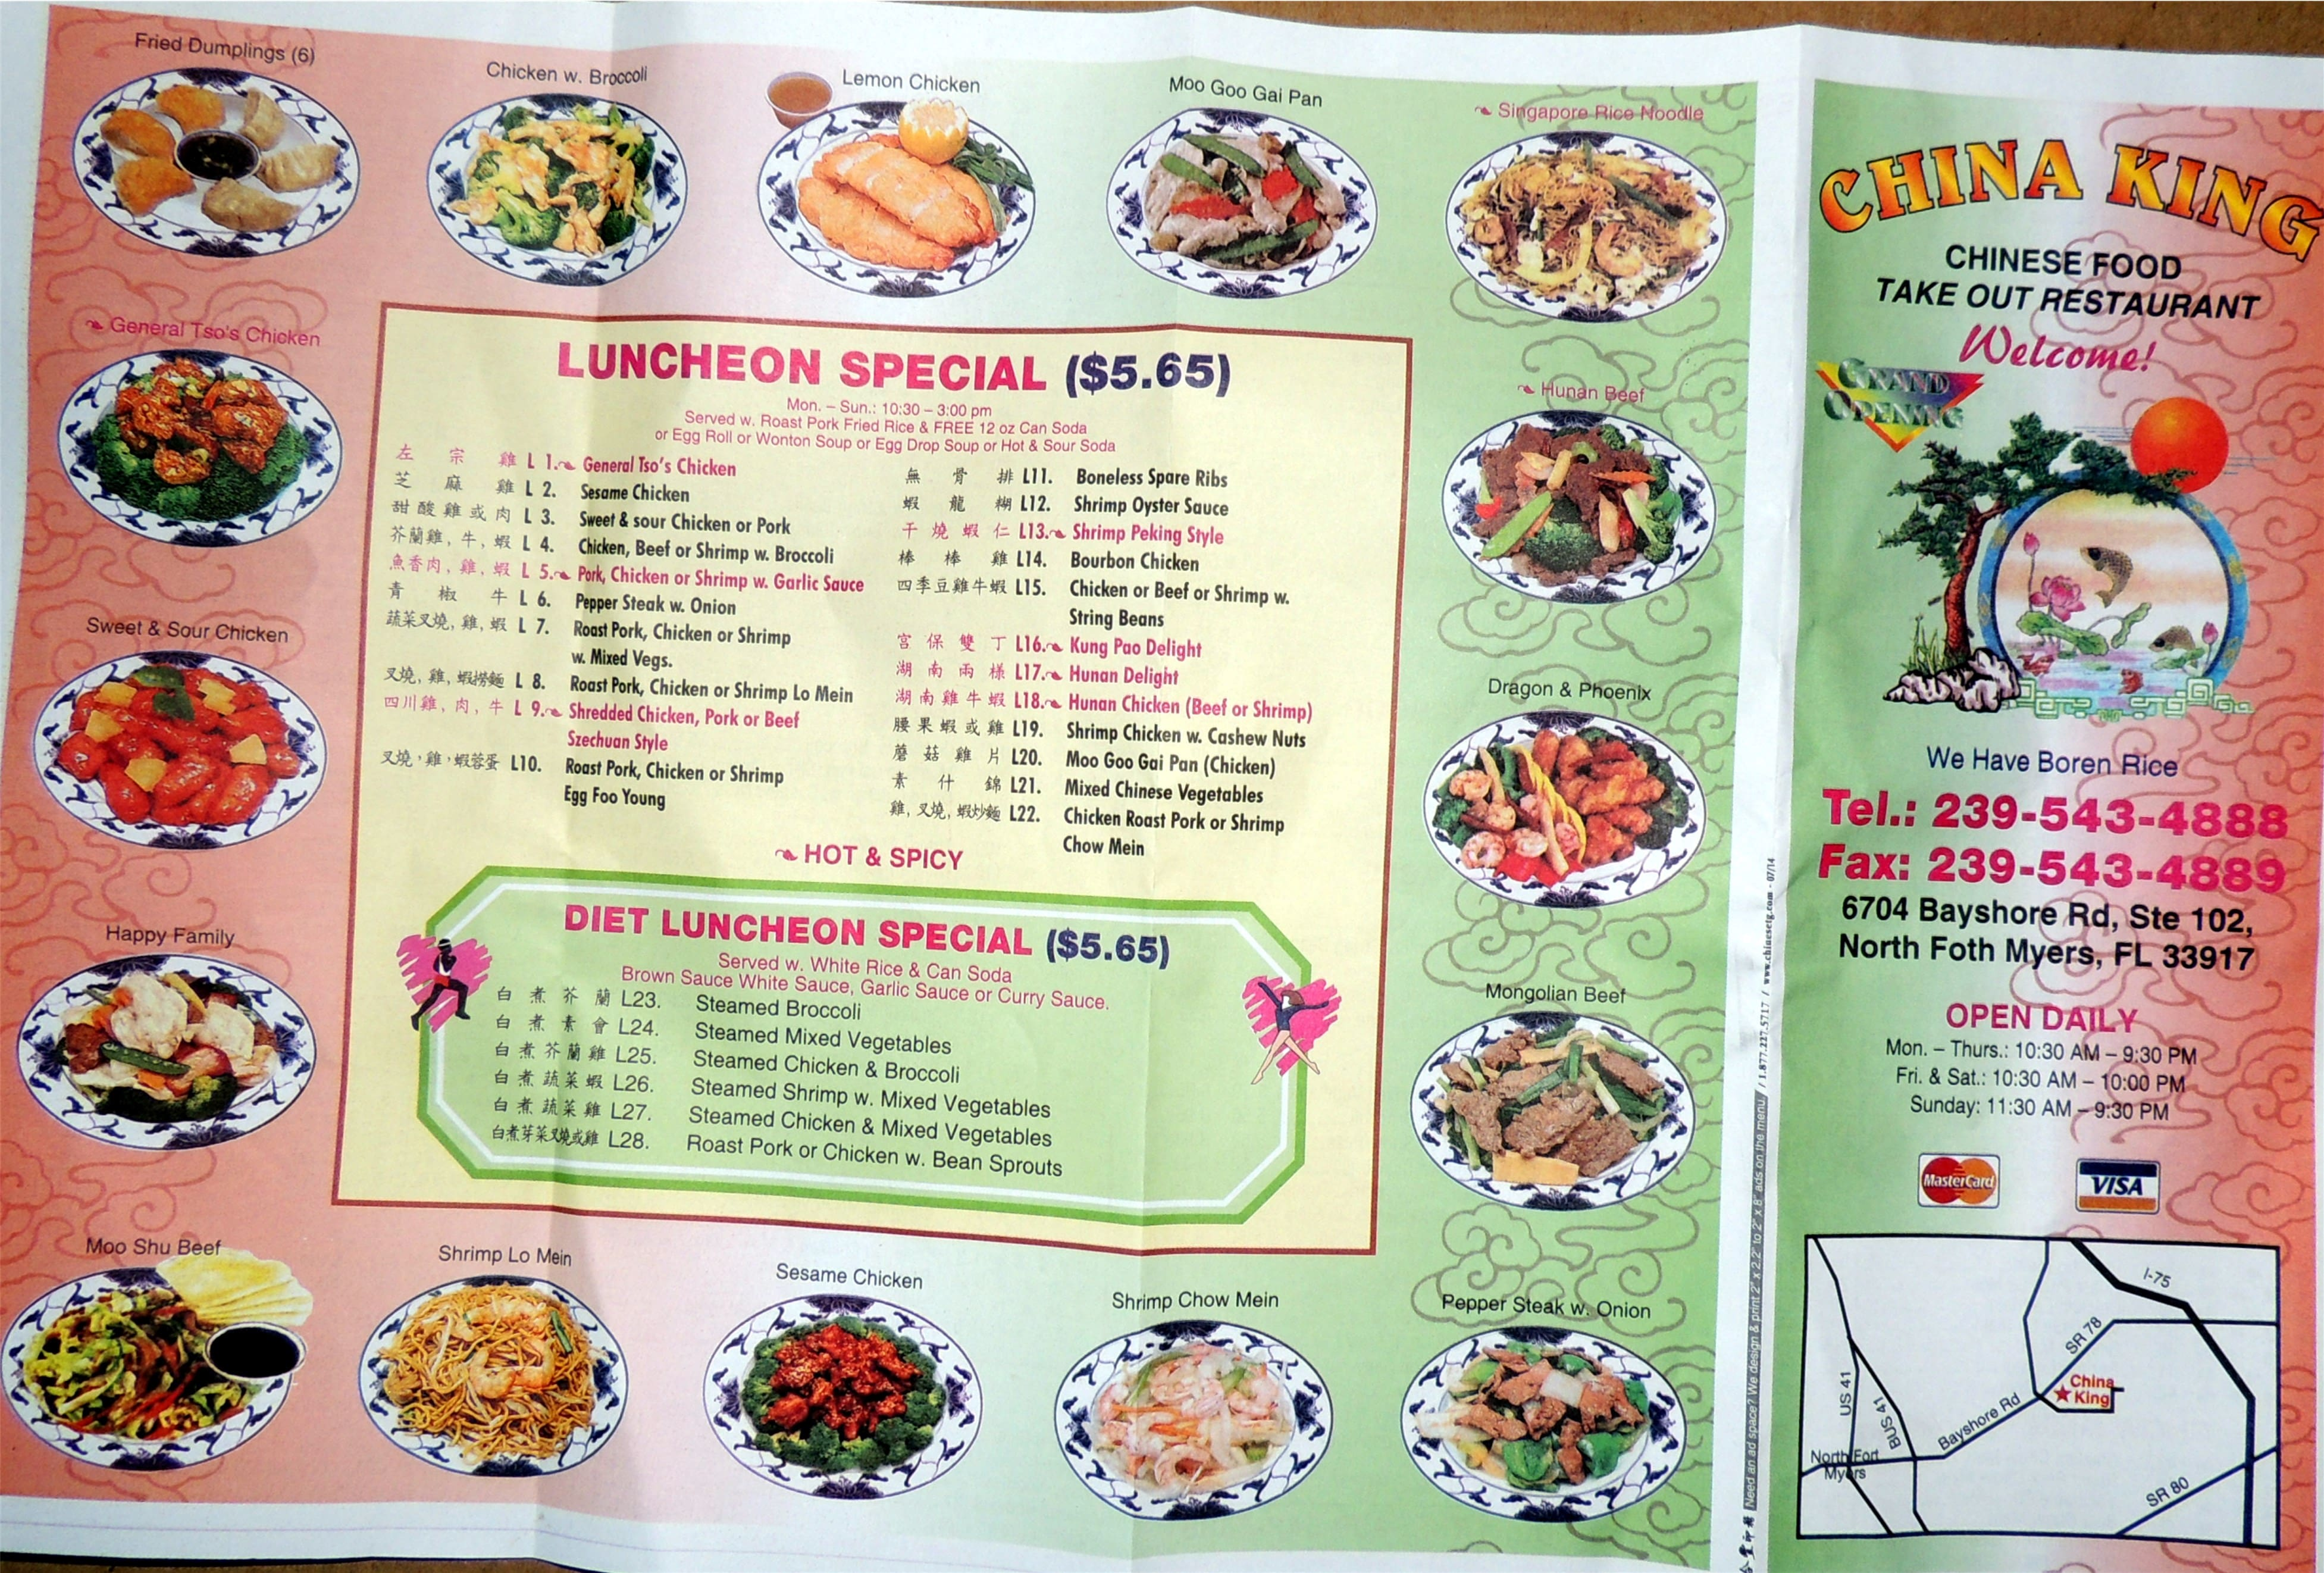 Chinese Food Delivery North Fort Myers